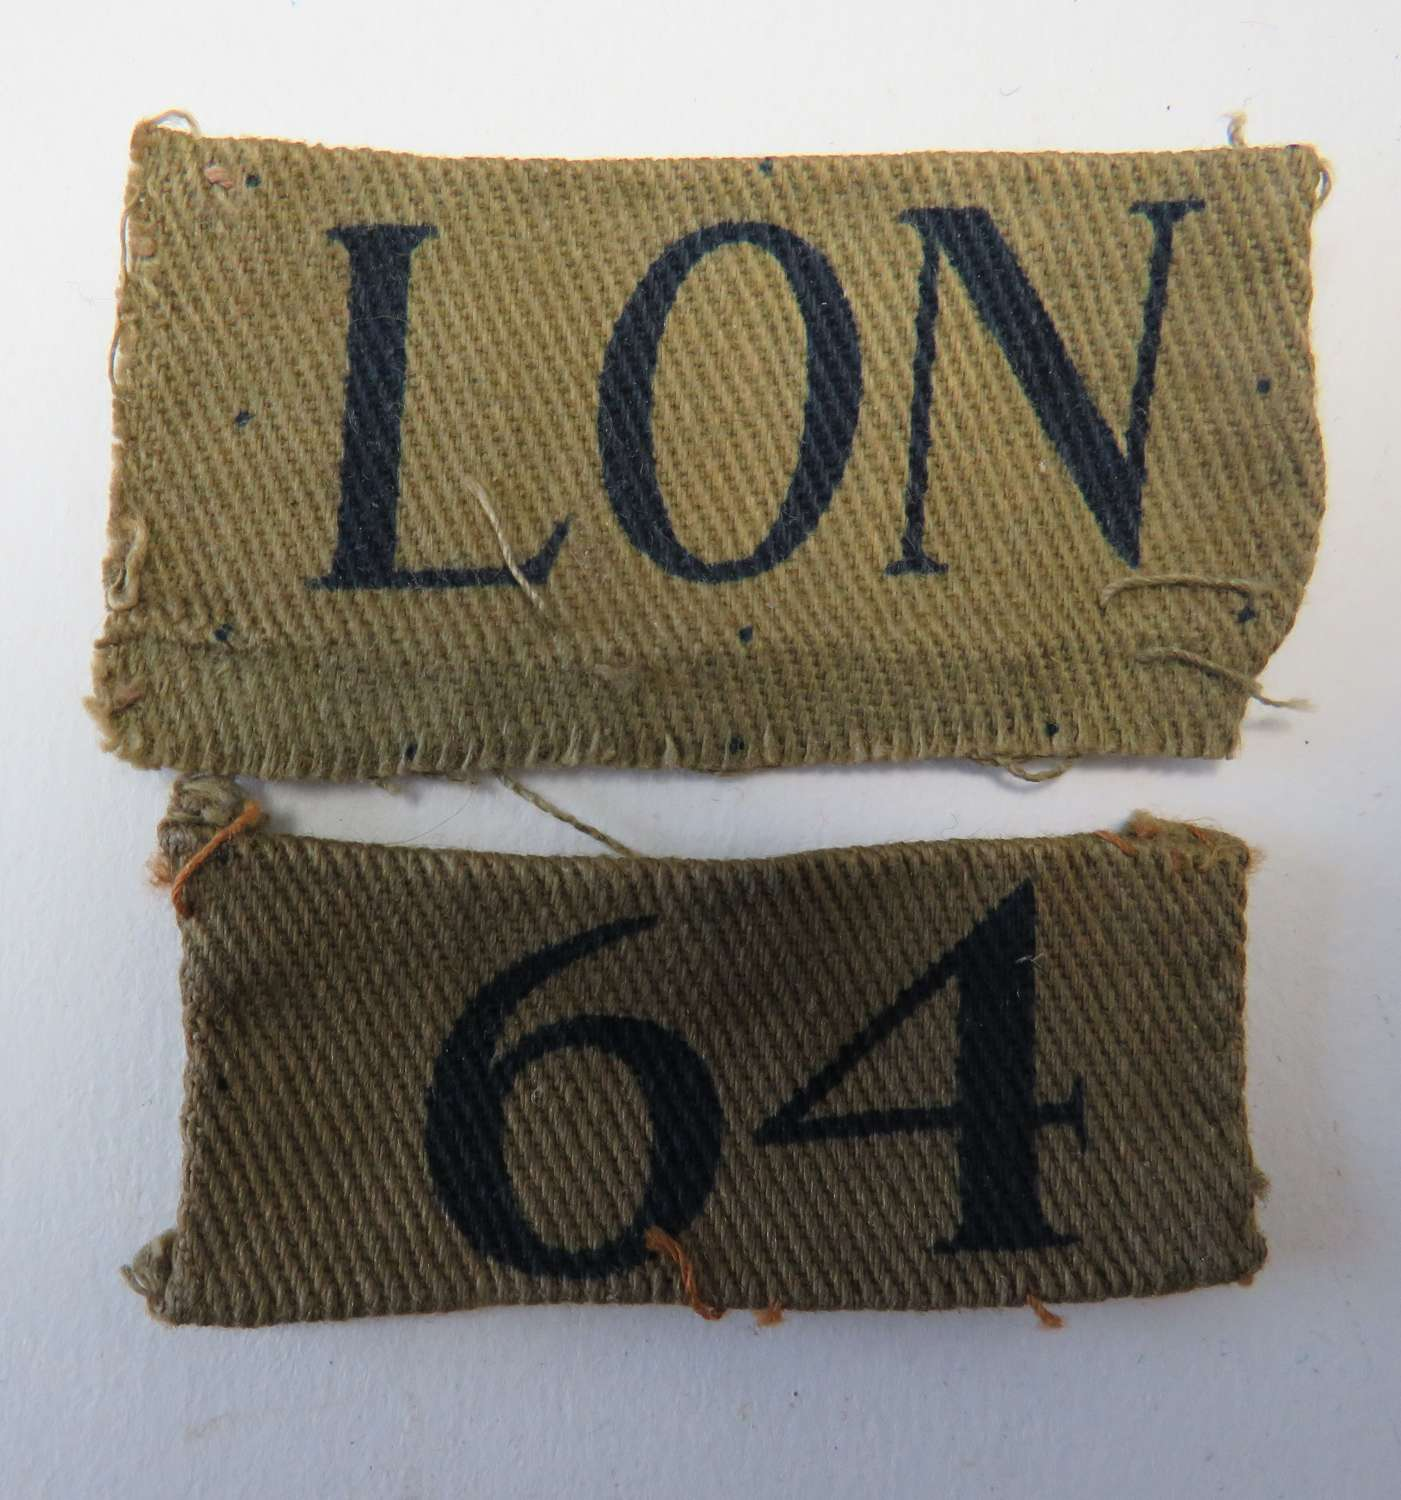 London 64 Home Guard Formation Badge